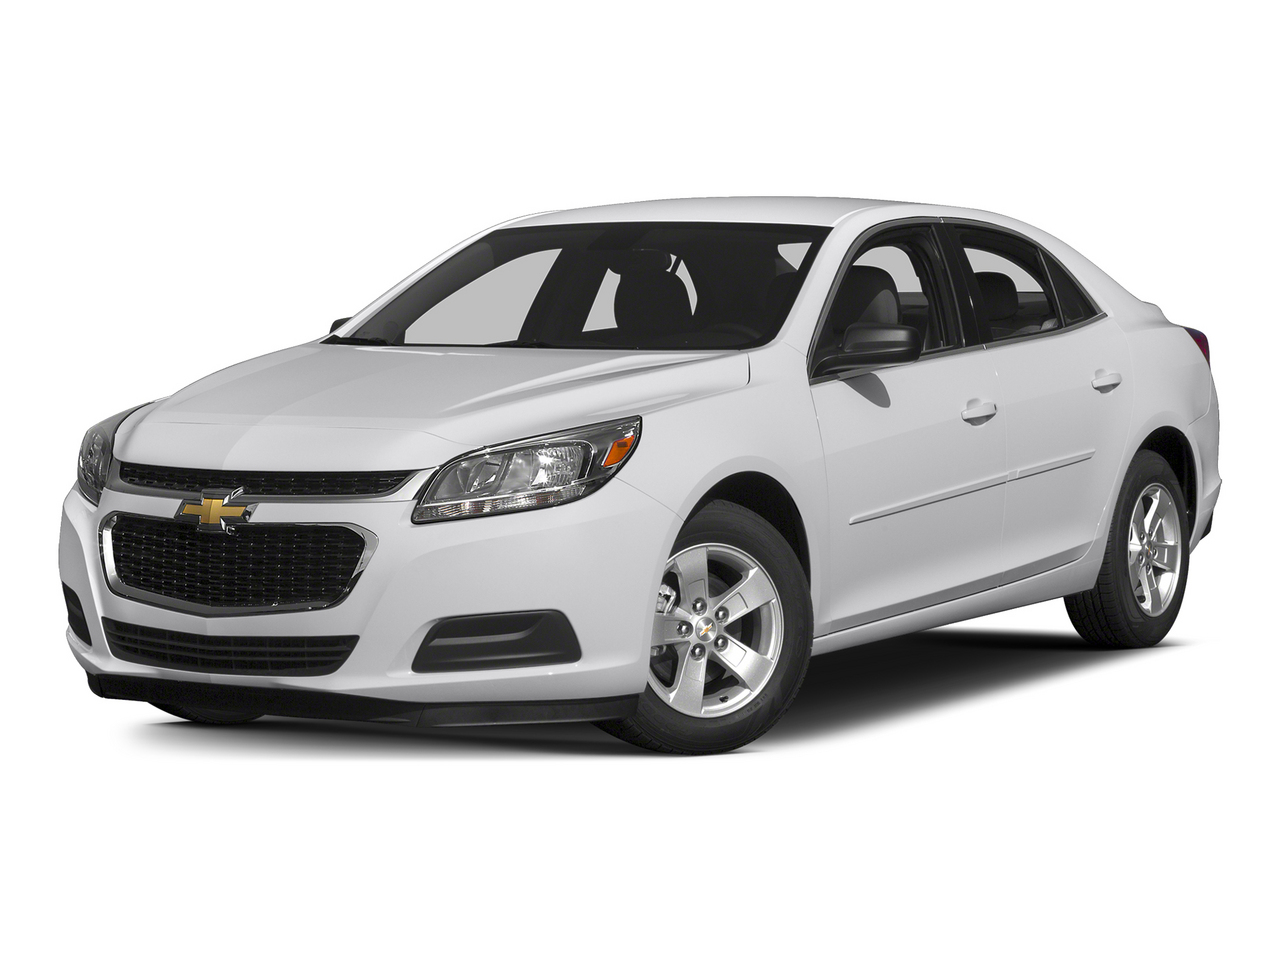 2015 Chevrolet Malibu LS LS 4dr Sedan Slide